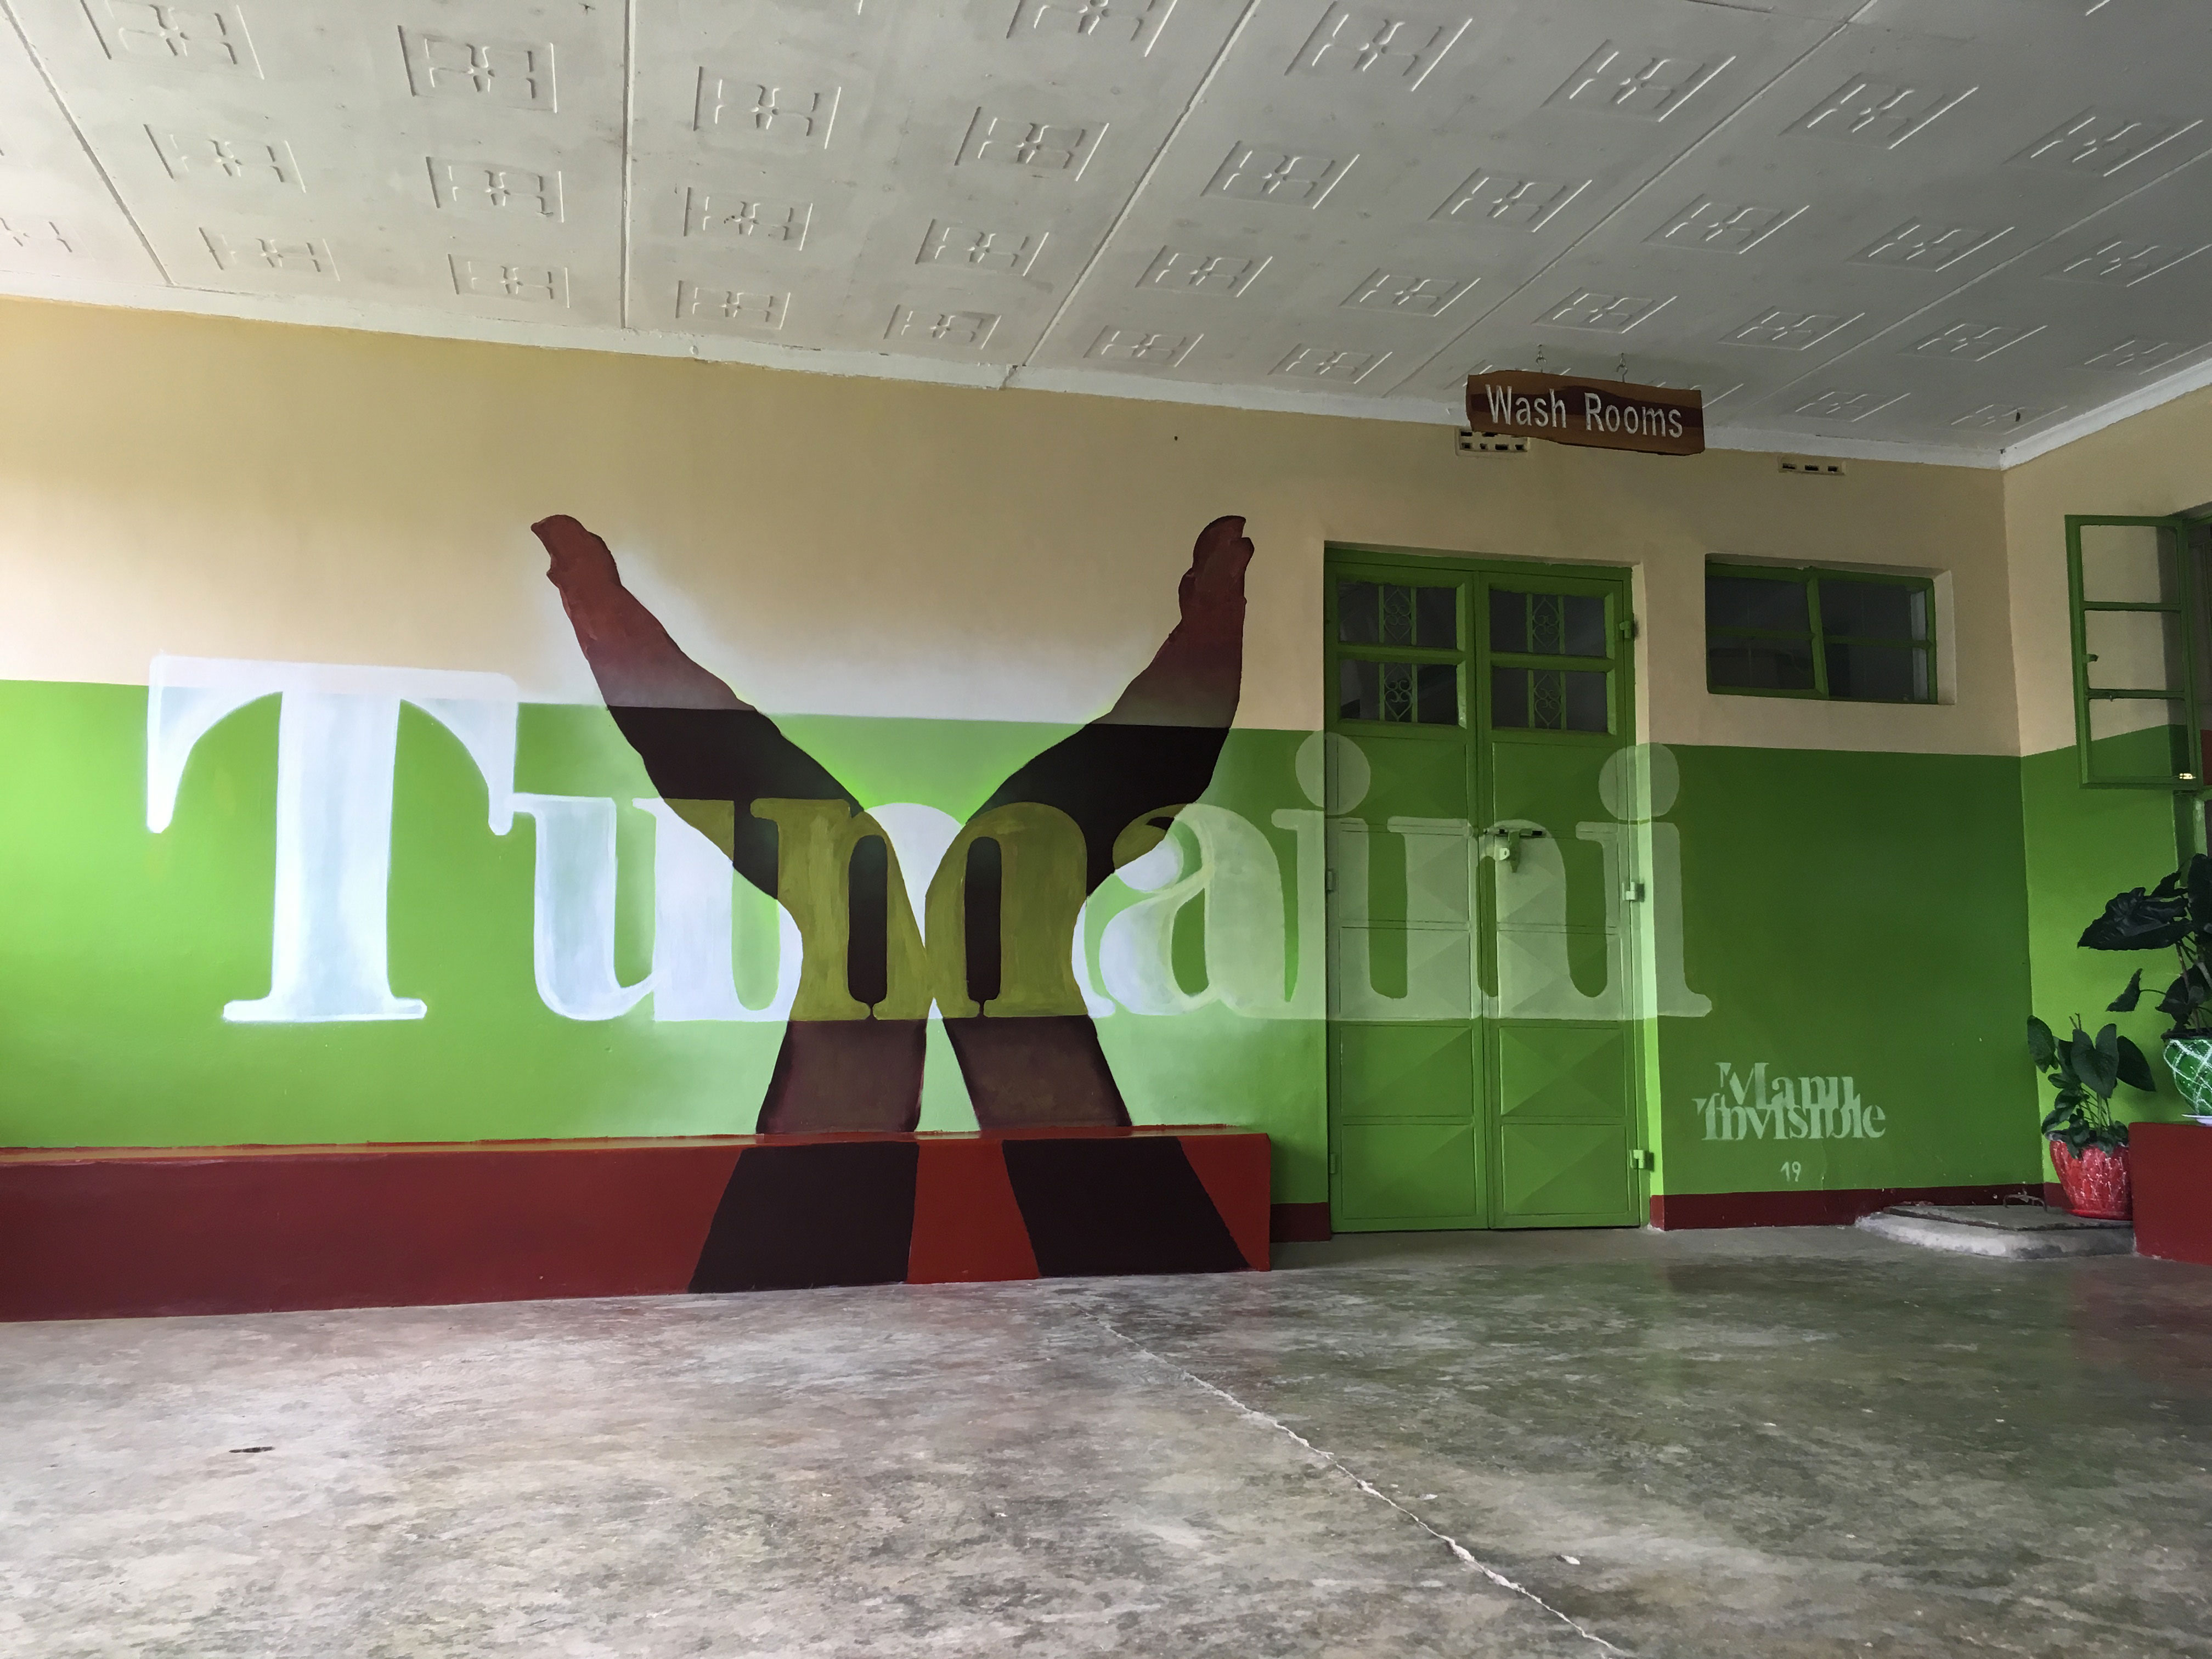 ''Tumaini'' Spray and acrilic paint on wall 3 x 6 m Nanyuki (Africa) 2019